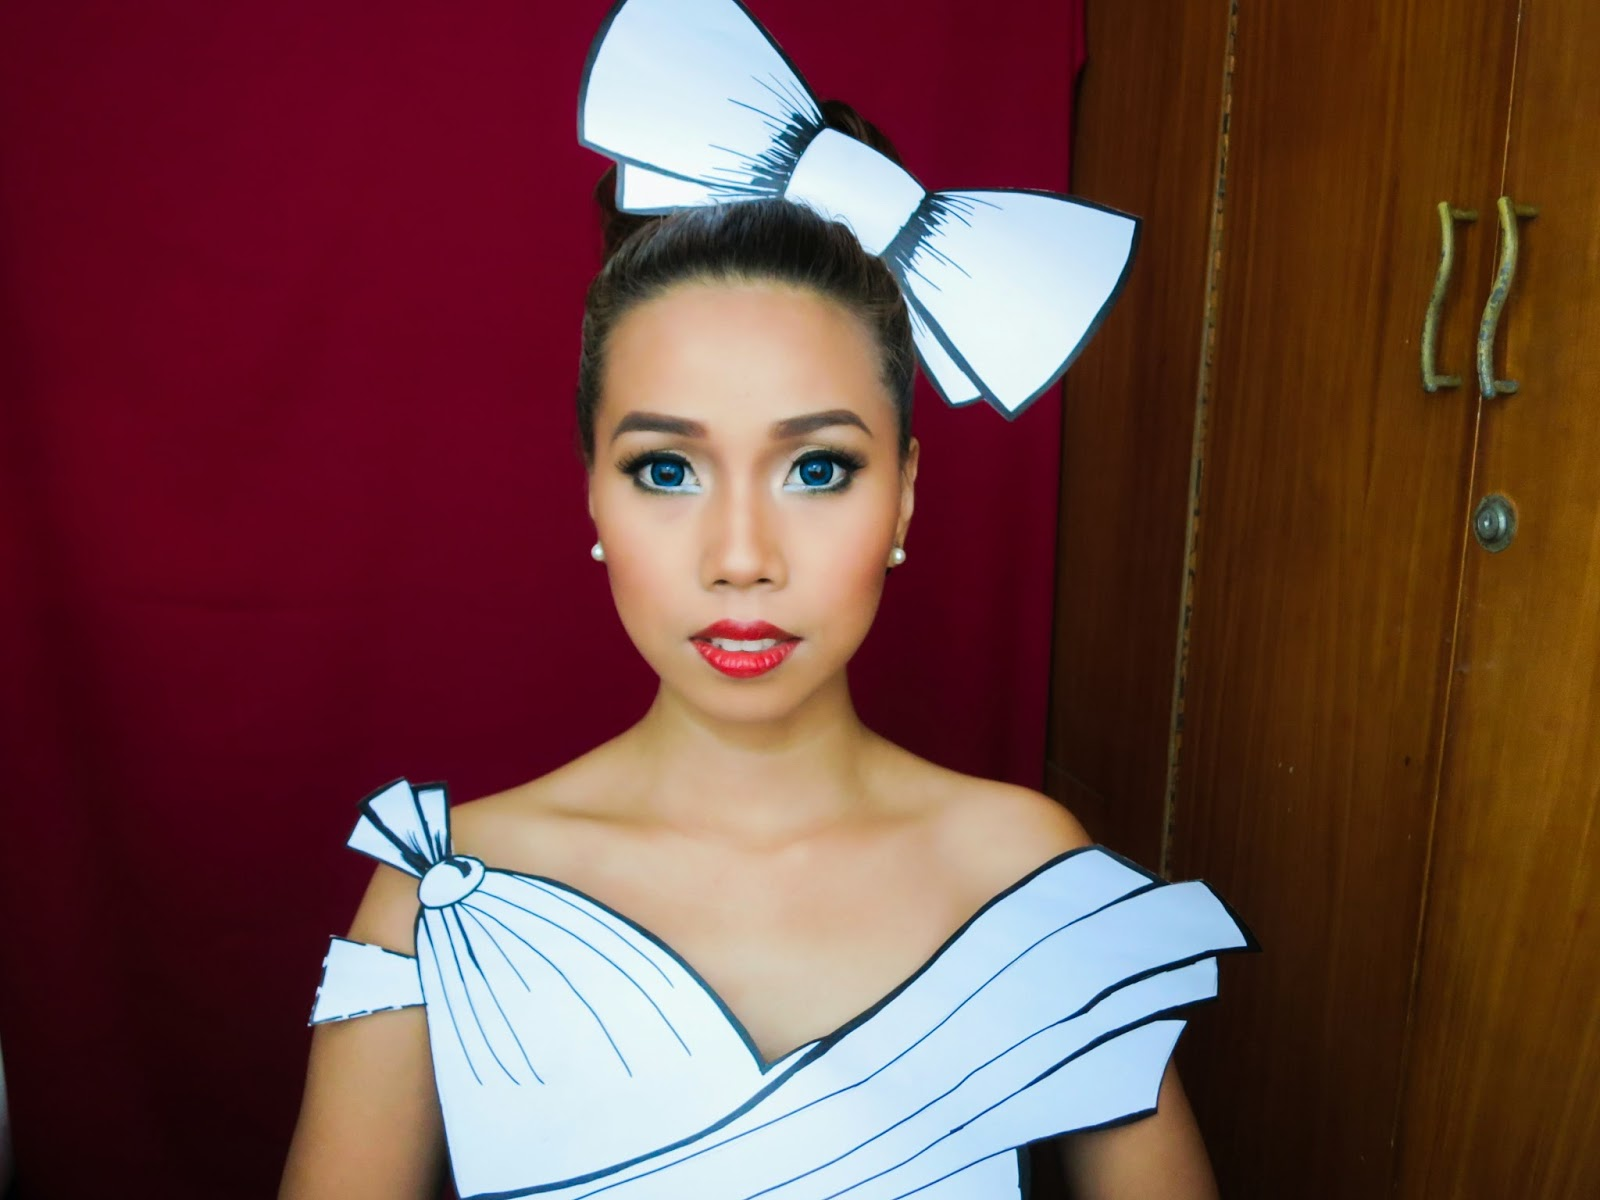 Mineeh11 halloween look 2 paper doll next thing youll know people will be amazed by your simple yet genius halloween look heres the makeup tutorial baditri Image collections